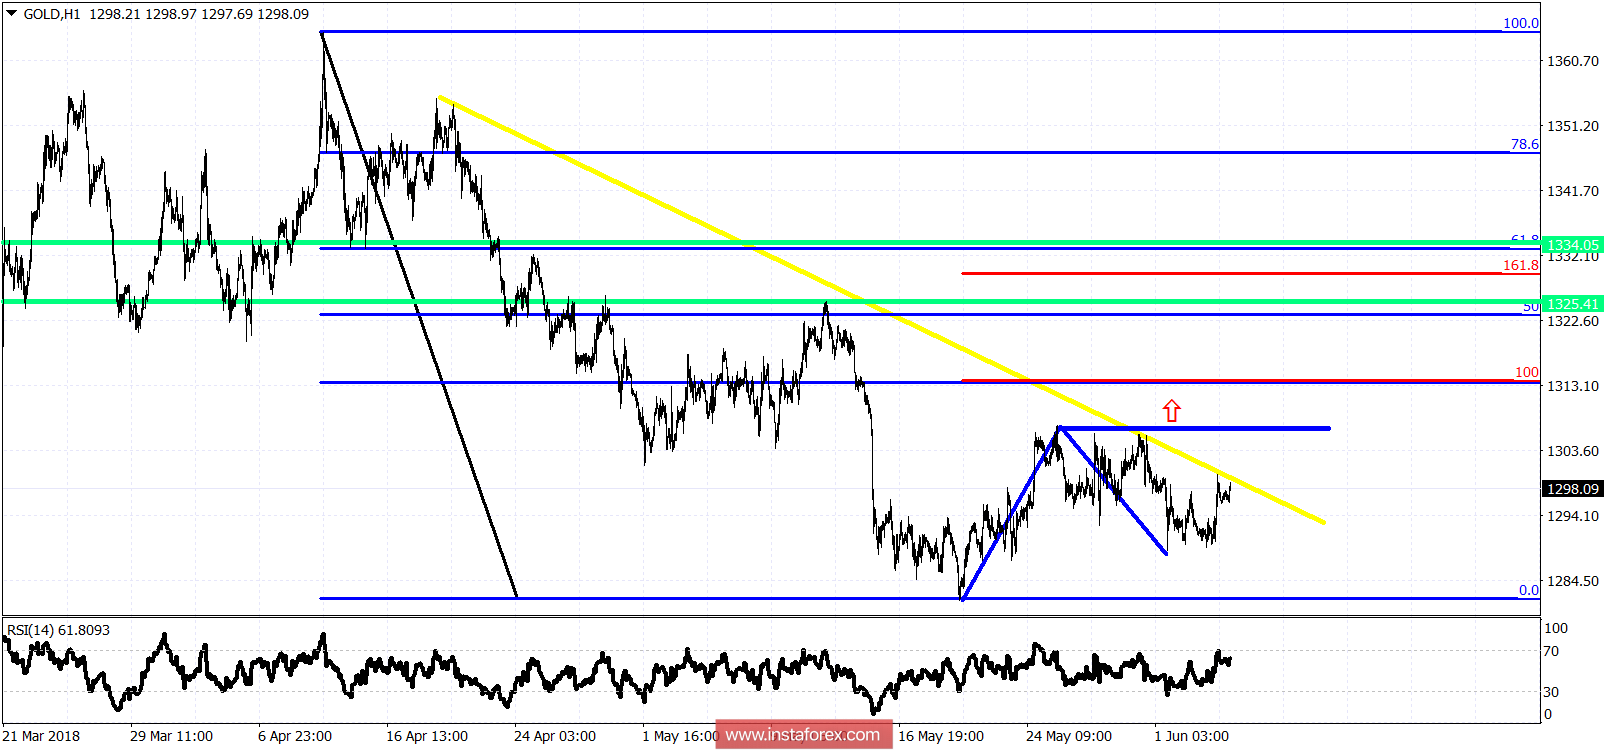 Technical analysis on Gold for June 6, 2018